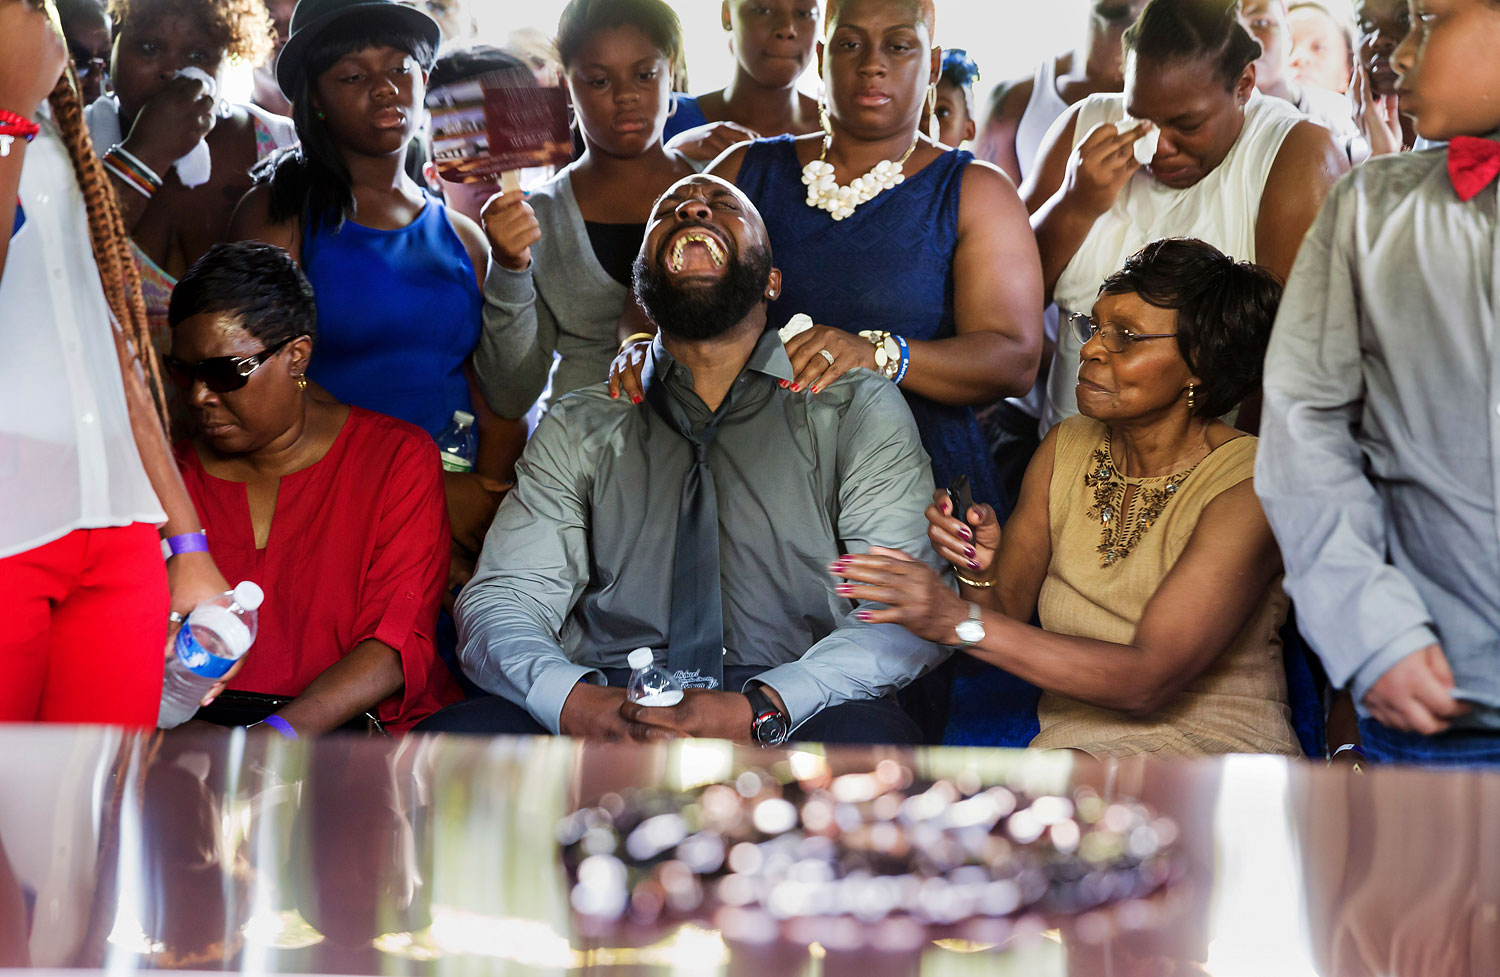 Michael Brown Sr., center, yells out as his son's casket is lowered into the ground at St. Peter's Cemetery in St. Louis on Aug. 25, 2014